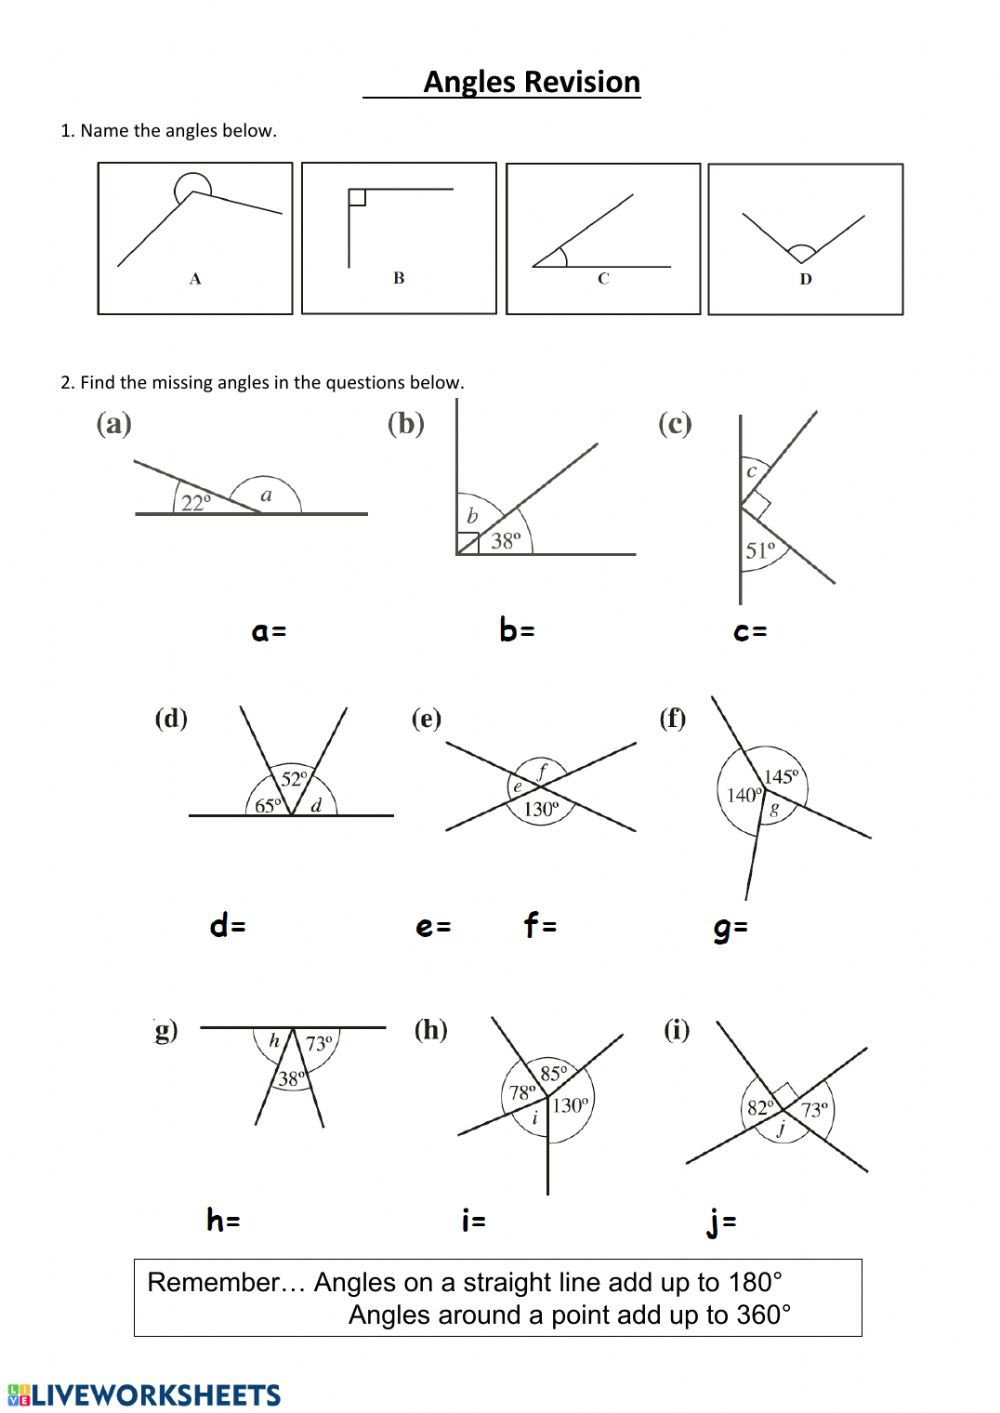 Lines and Angles Worksheet Finding Missing Angles Interactive Worksheet